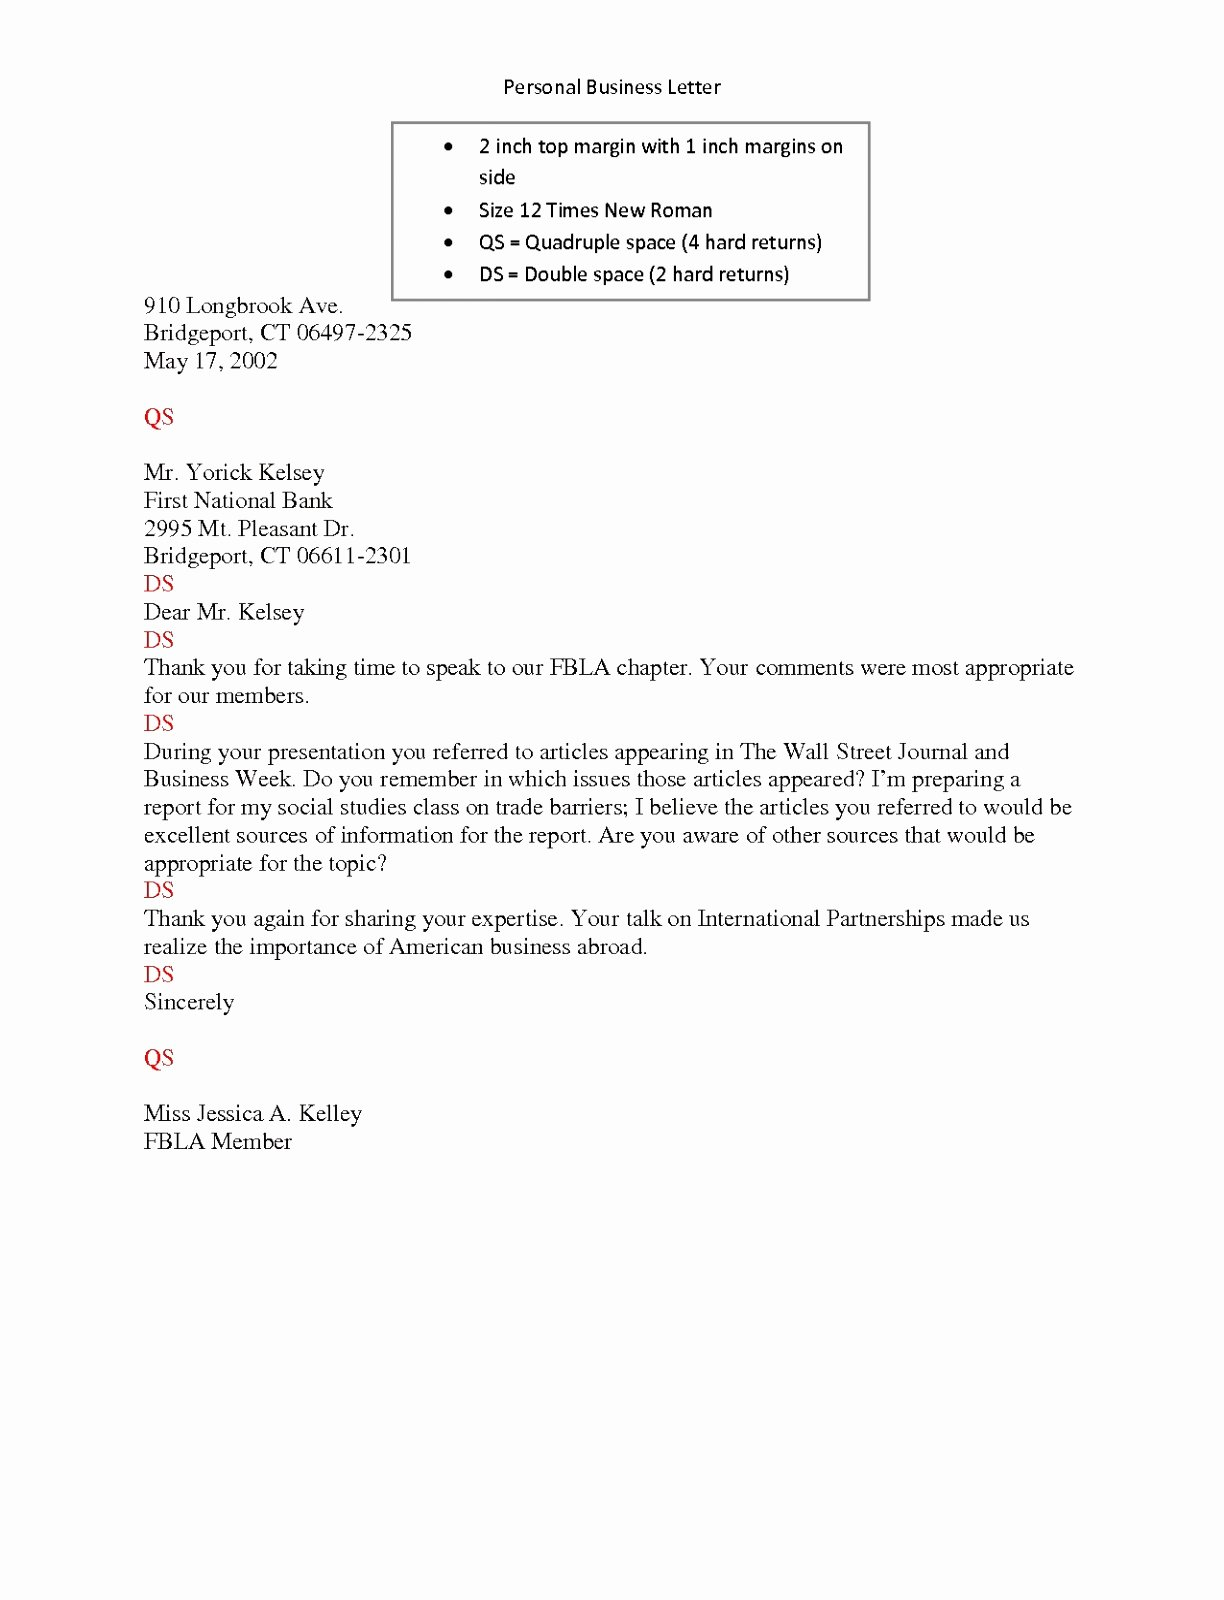 Letter Template Google Docs Elegant 6 Google Docs Business Letter Template Ieate